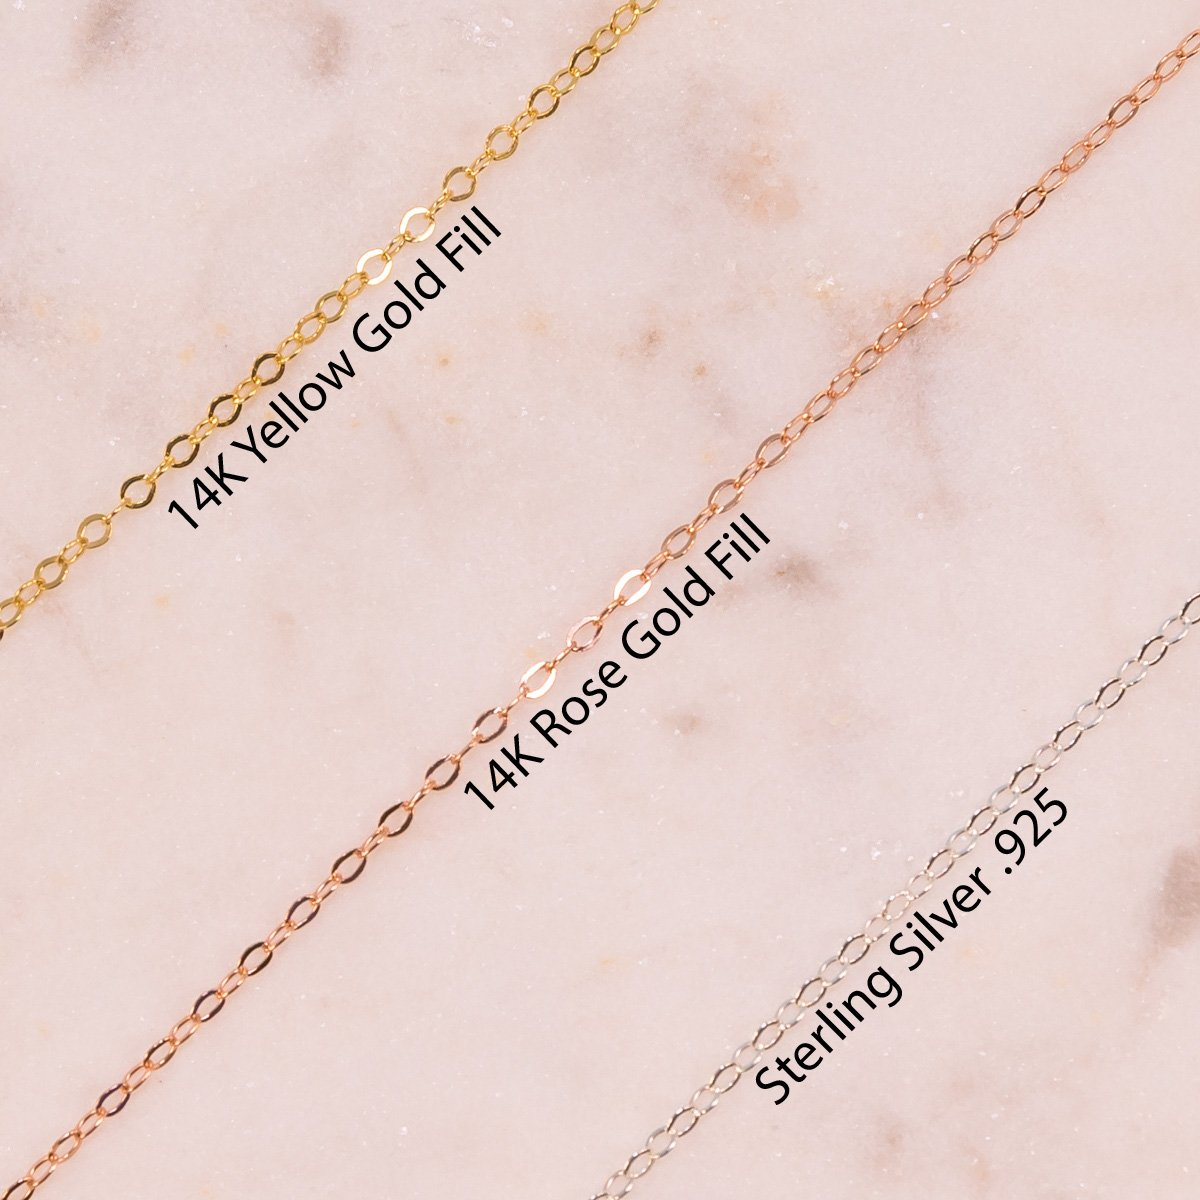 14l Gold Fill, 14k Rose Gold Fill, Sterling Silver Chain | Liz.Beth Jewelry Co.